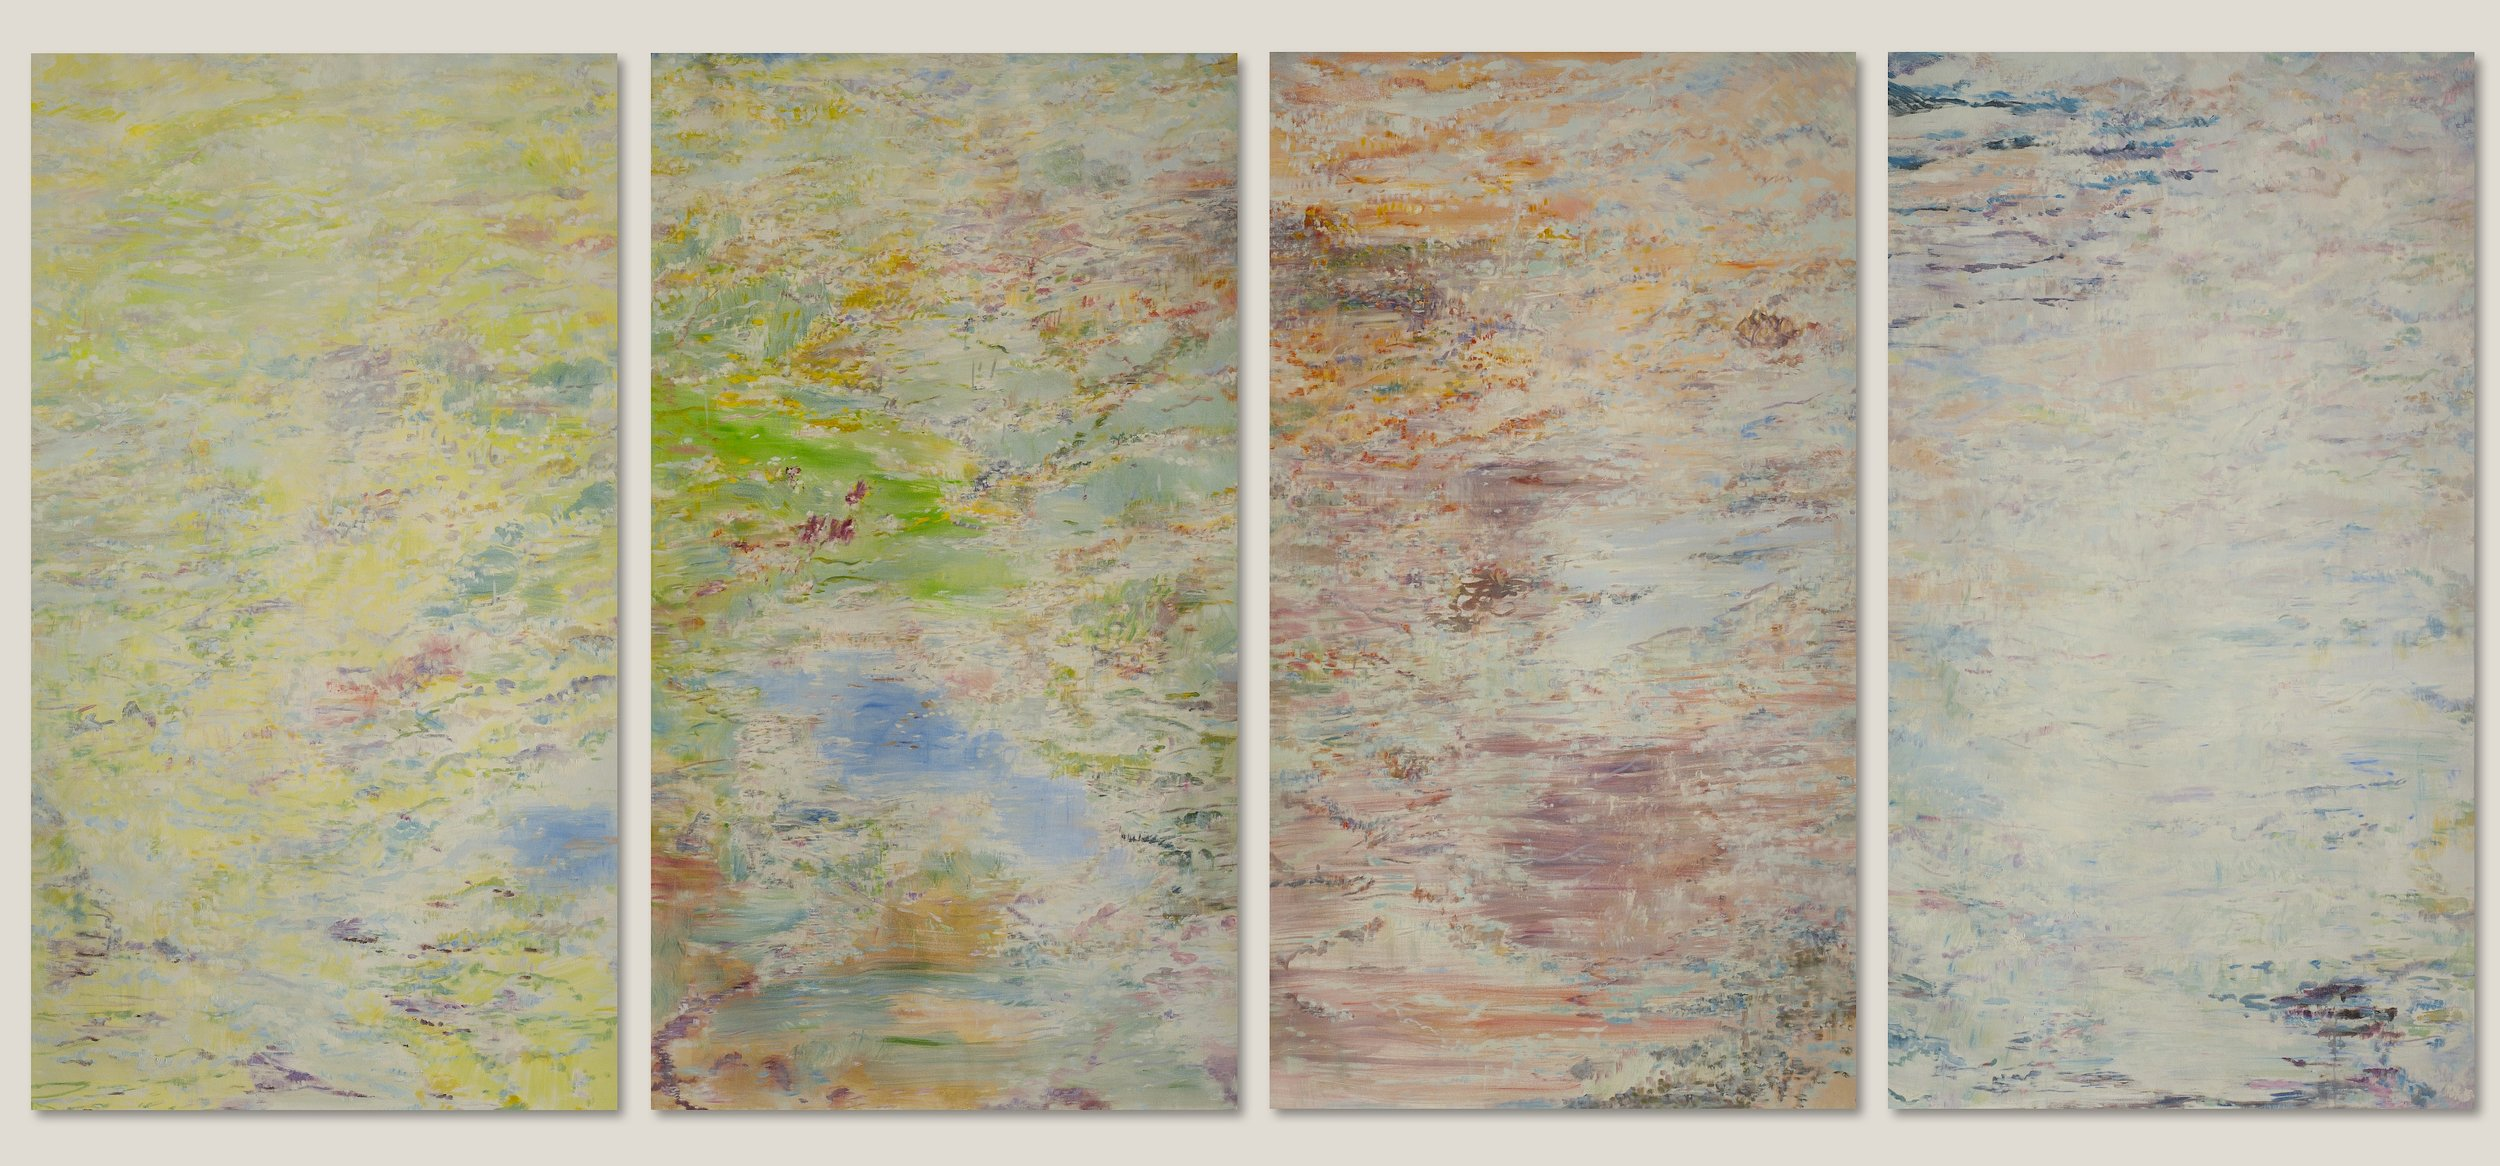 The Seasons, 2014, oil, canvas, 92 x 54 in, $4,5000